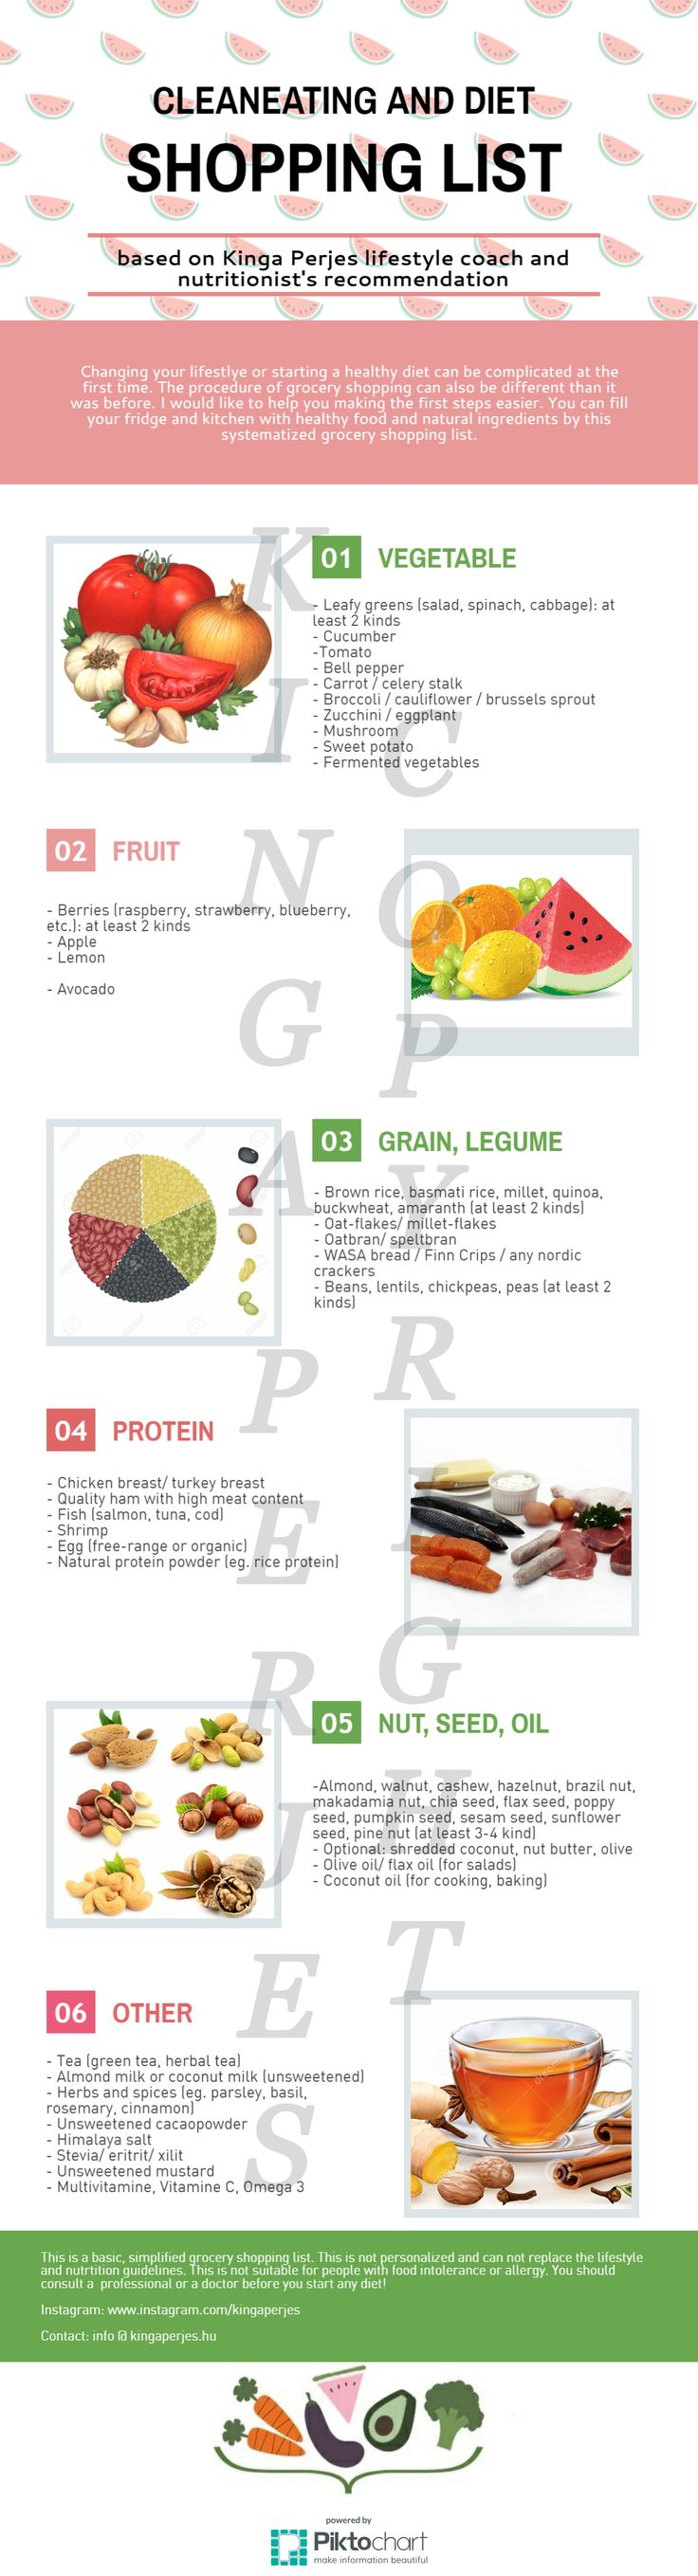 Cleaneating and diet shopping list